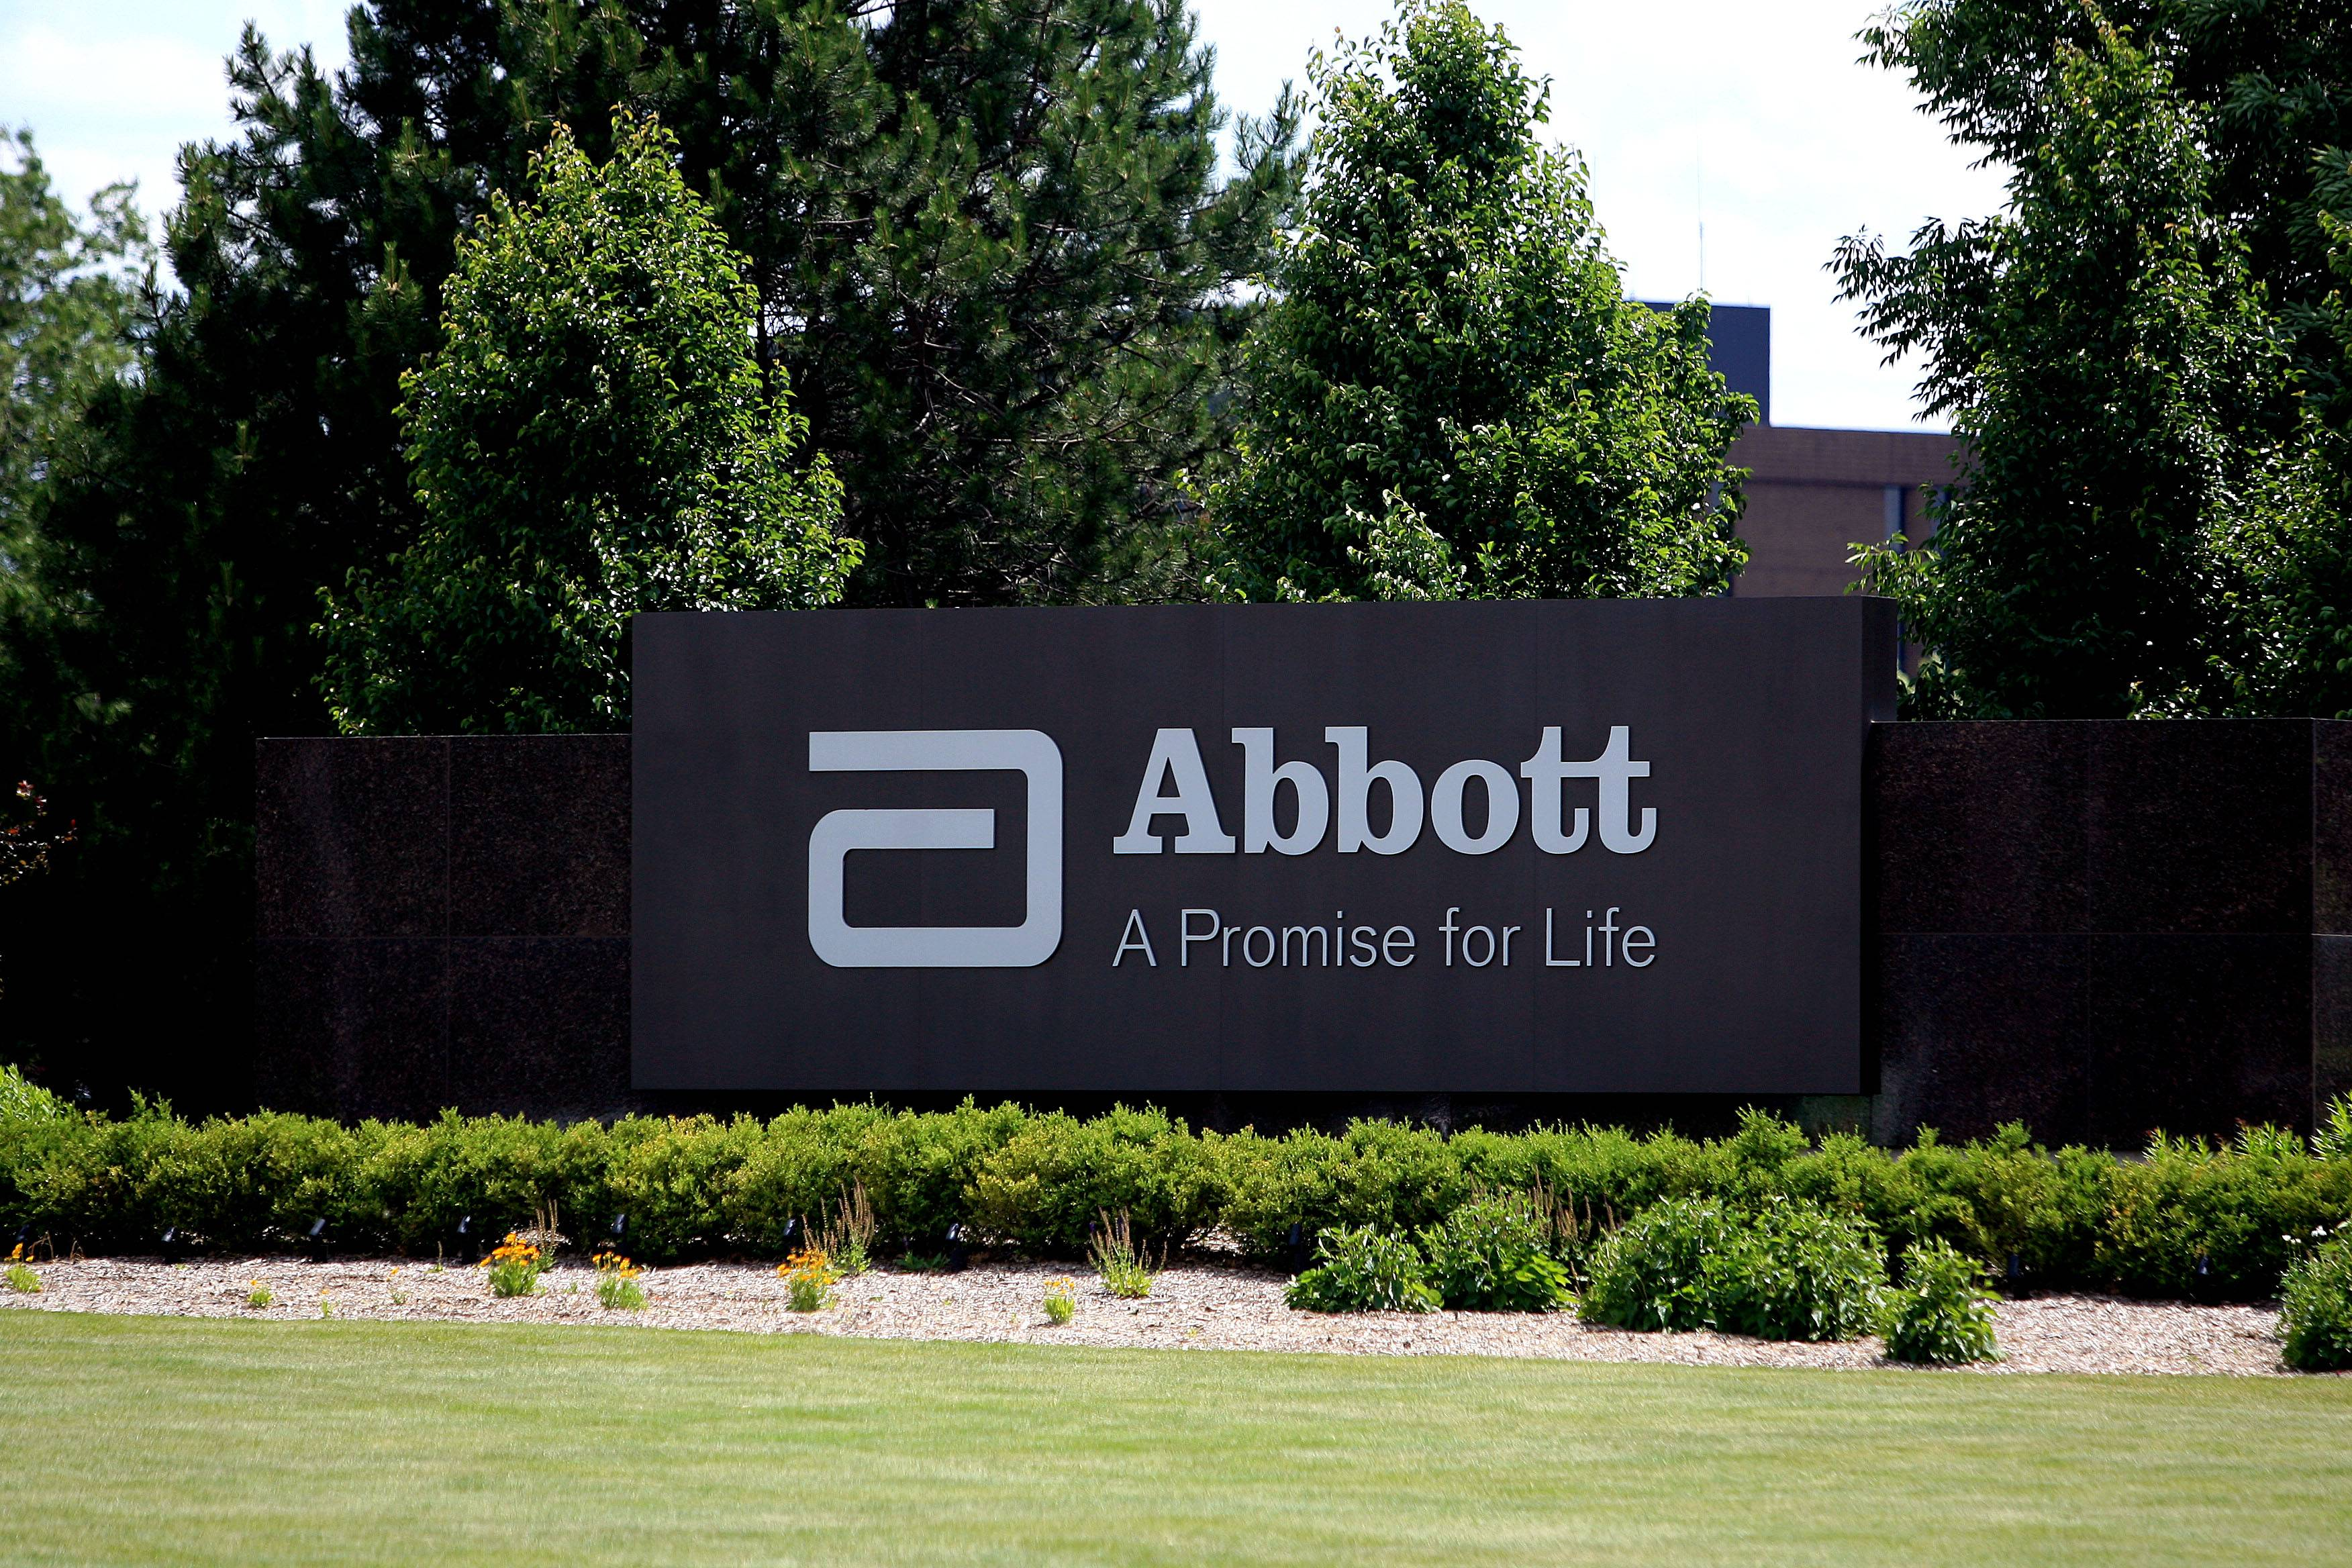 Abbott Laboratories has filed suit to terminate its $5.8 billion purchase of Alere Inc., citing setbacks since the deal was signed in January.